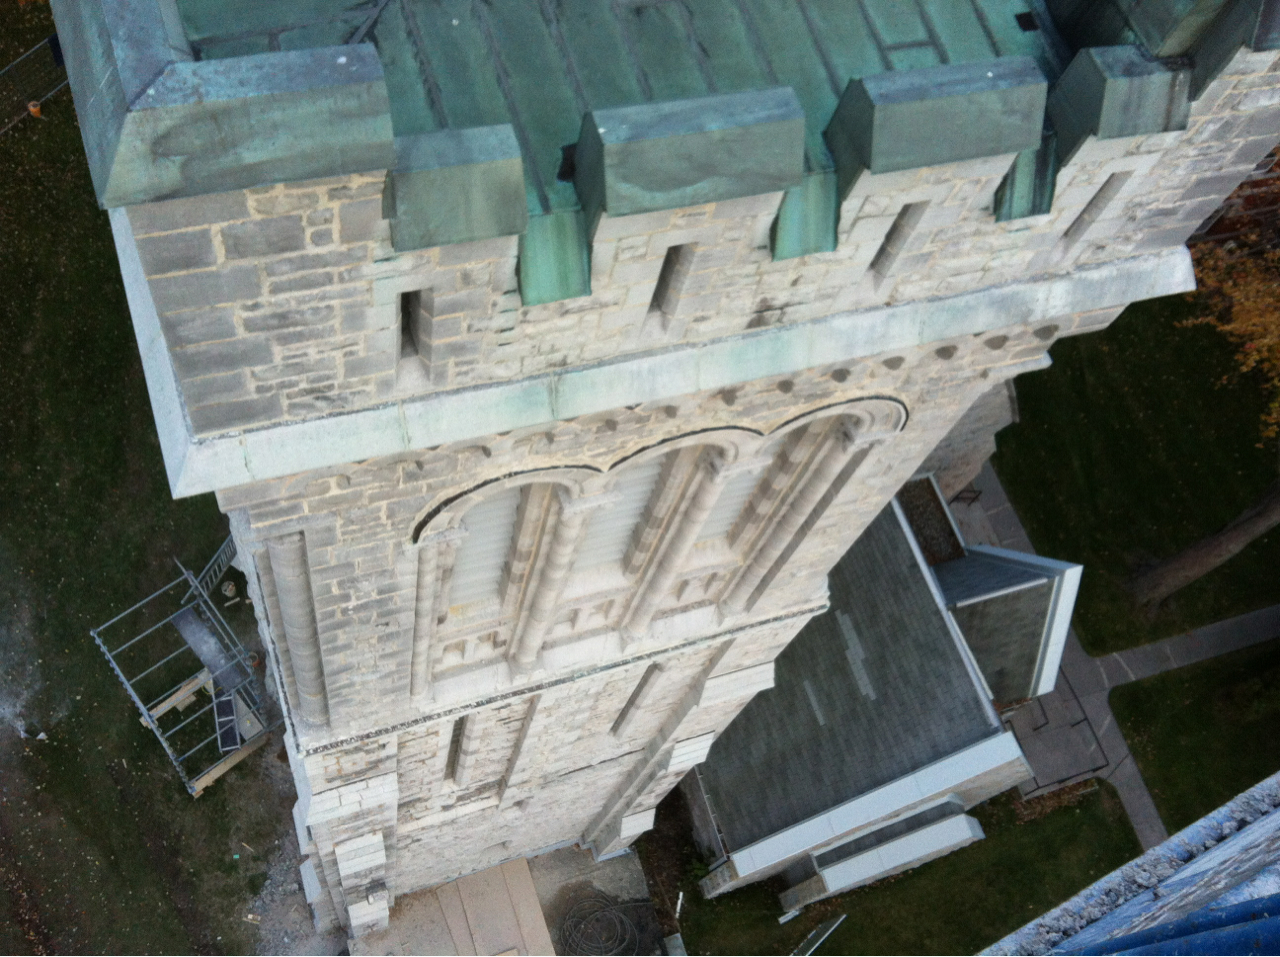 Towards the end of our project at the church we decided to check out the view from the fully extended lift that we have been using the access the upper section of the bell tower. At 125' above Kingston, we get a unique view of the church that not even its original builders would have seen.